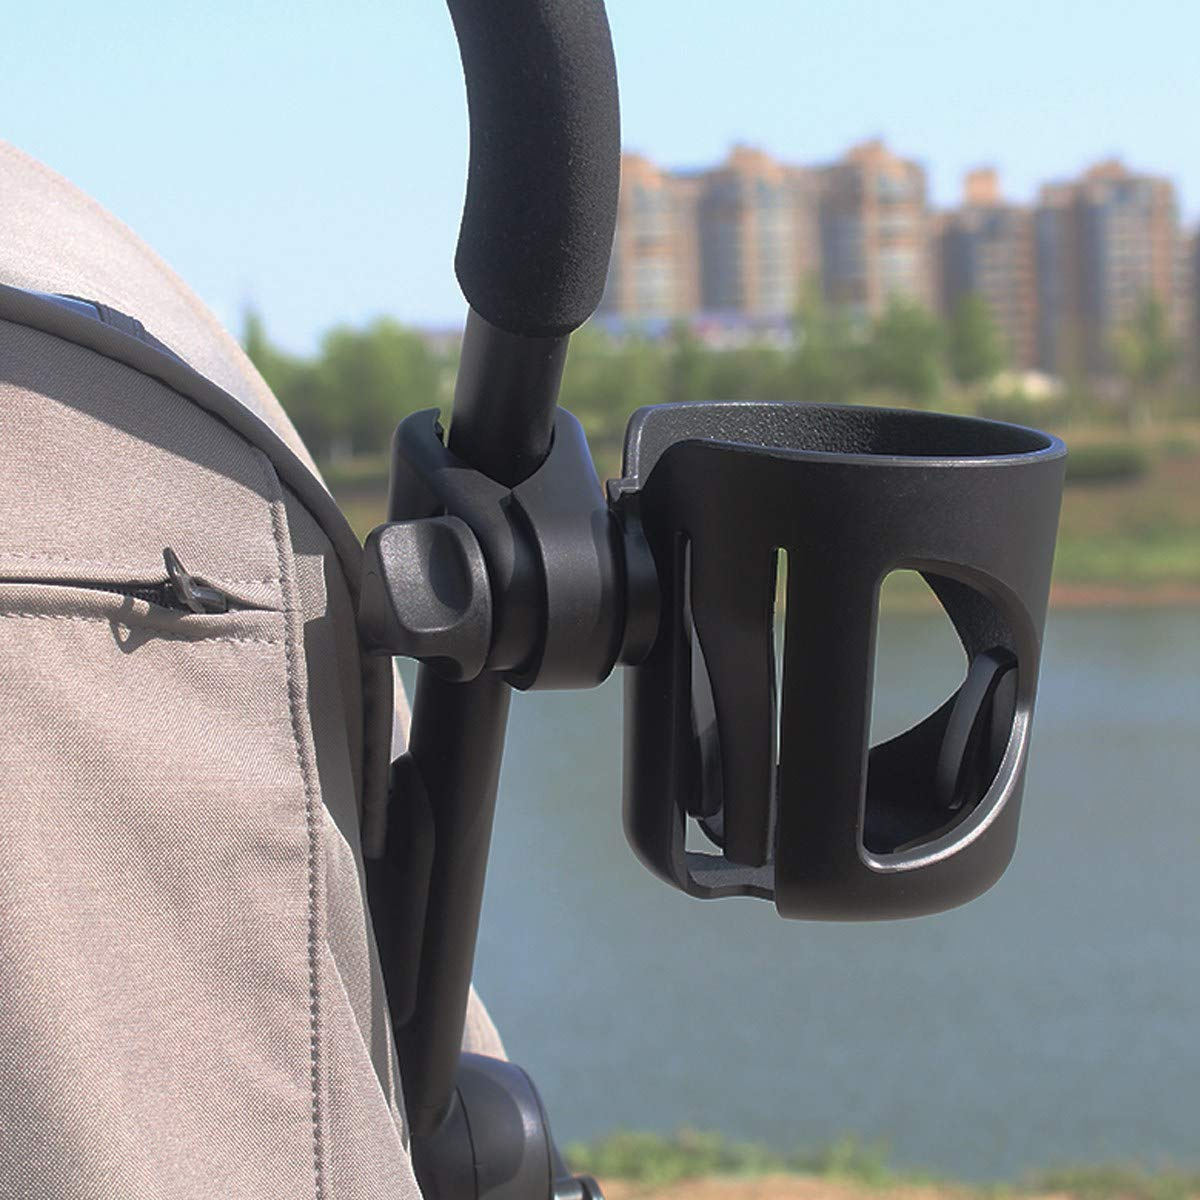 Black Drink and Coffee Cup Holder for Baby Buggy and Bike Universal Baby Bottle Organizer for Stroller VDROL Stroller//Pushchair Cup Holder with 2 Hooks 360 Degree Rotation Pram Cup Holder